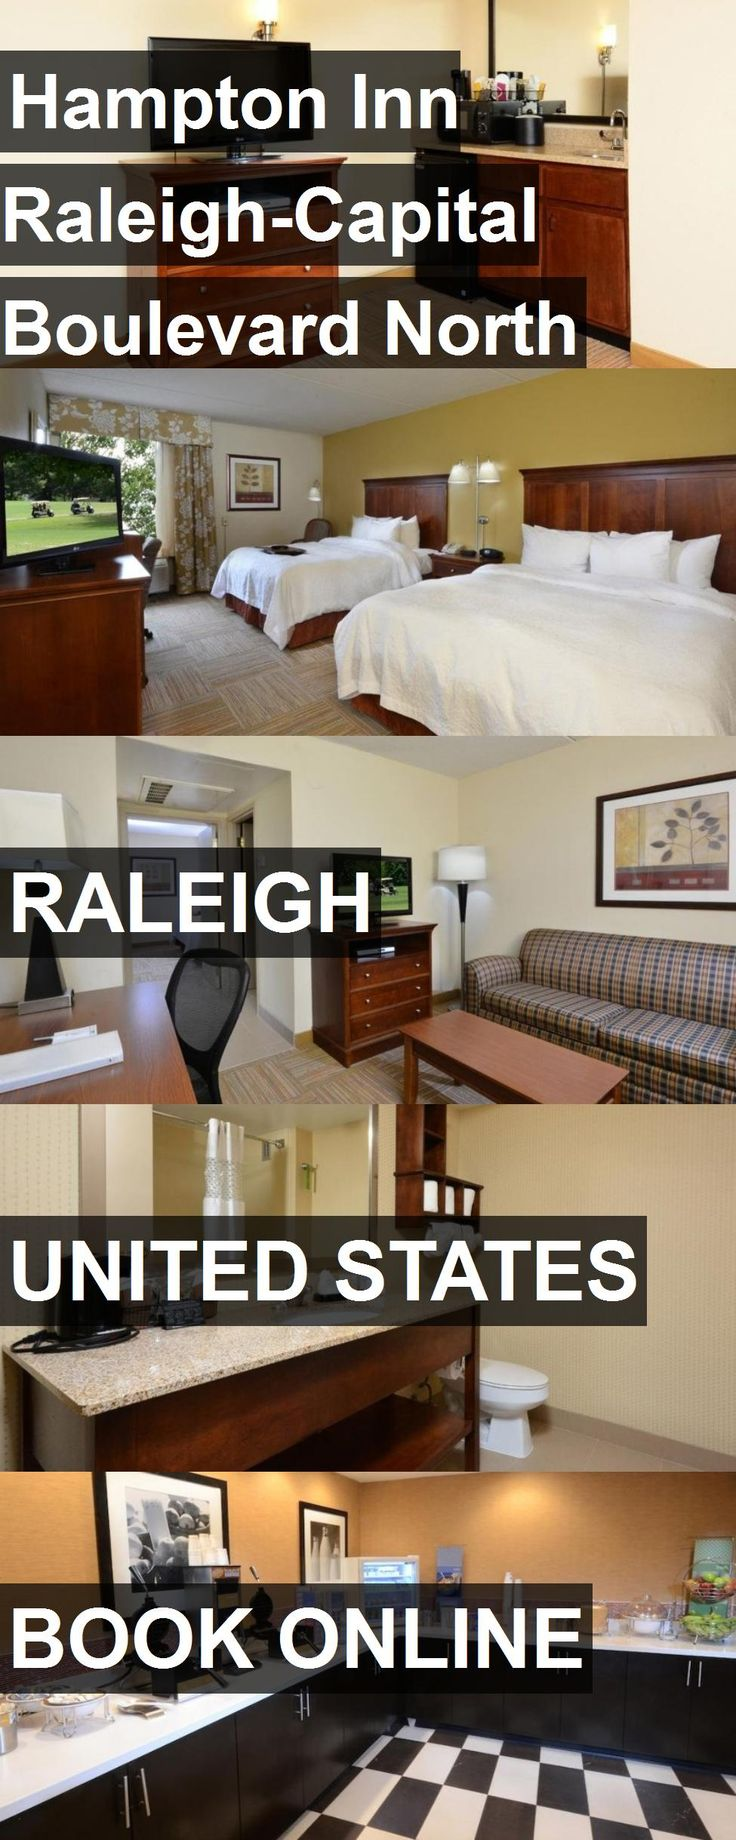 Hotel Hampton Inn Raleigh-Capital Boulevard North in Raleigh, United States. For more information, photos, reviews and best prices please follow the link. #UnitedStates #Raleigh #HamptonInnRaleigh-CapitalBoulevardNorth #hotel #travel #vacation